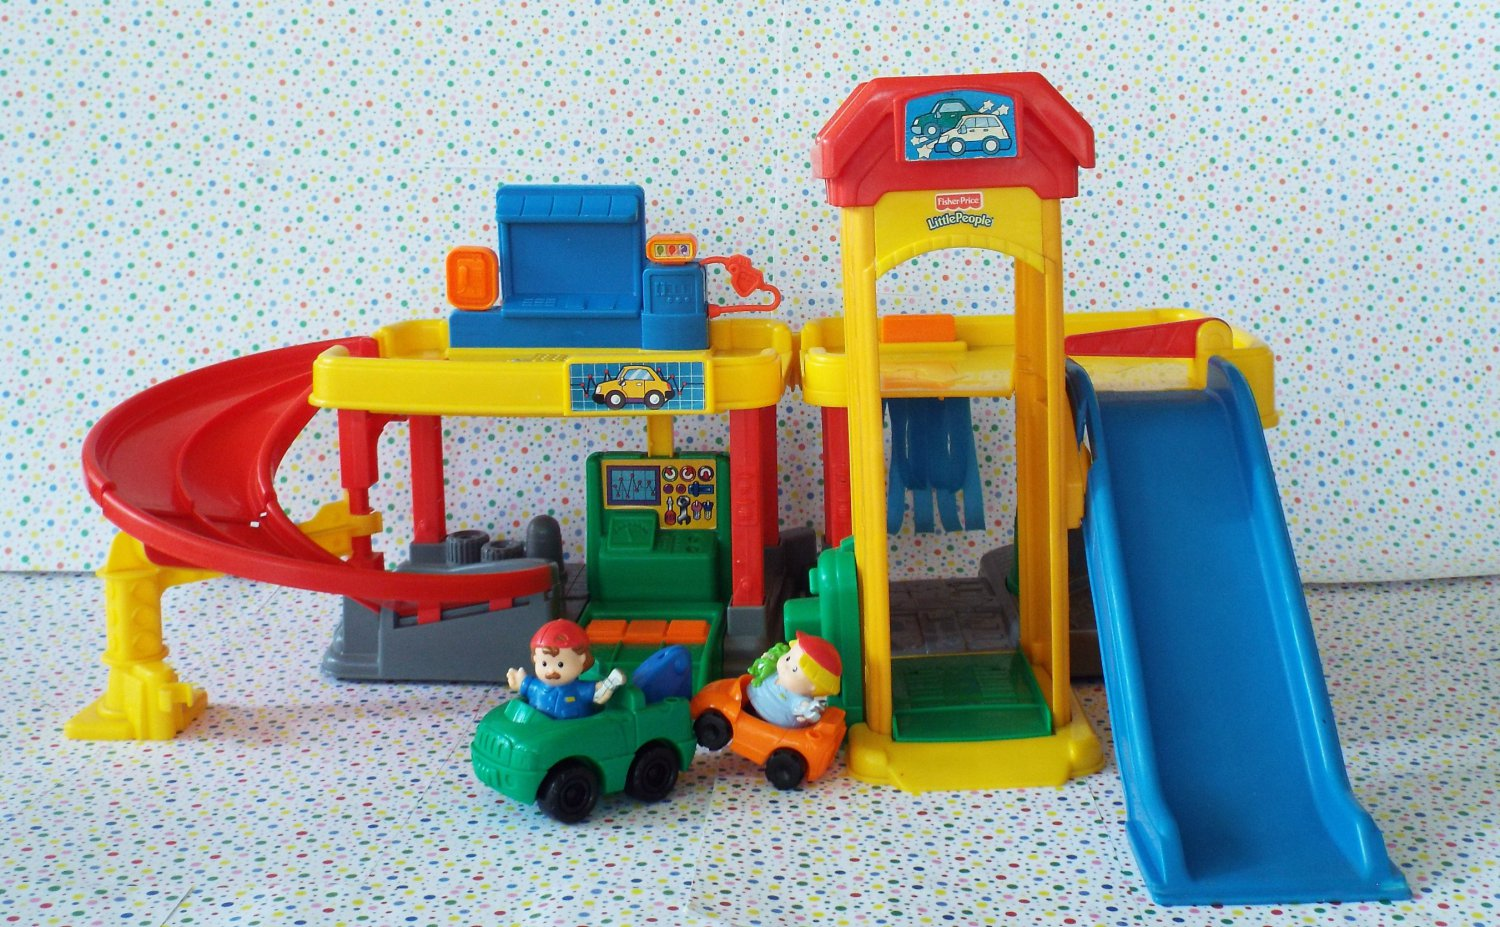 Garage little people de fisher price for Garage a persan